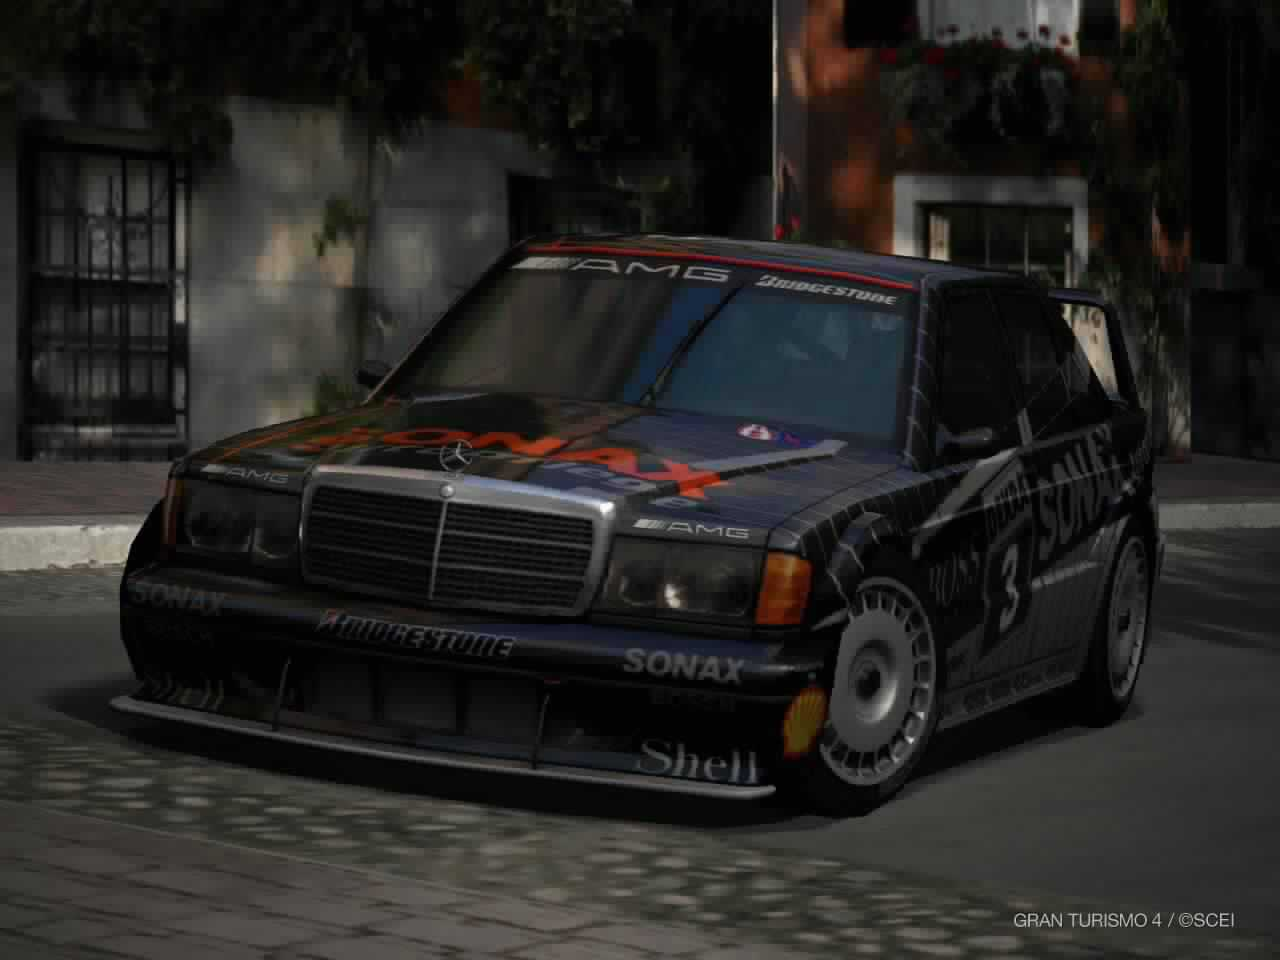 Mercedes-Benz 190 E 2 5 - 16 Evolution II Touring Car '92 | Gran